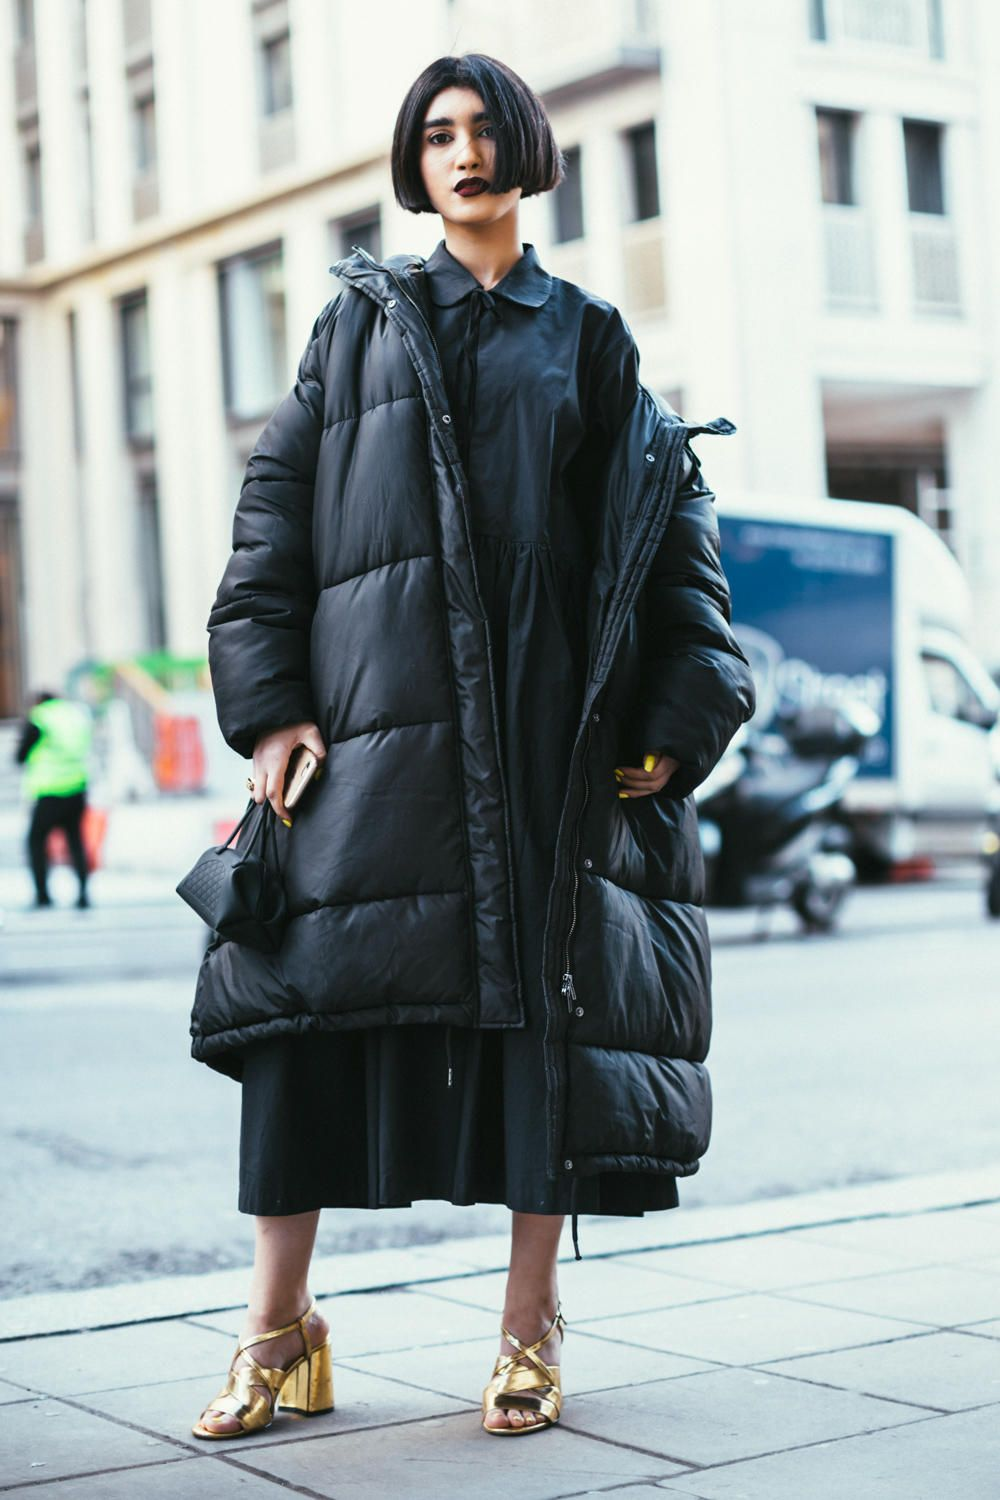 Our favorite street style looks from outside the shows over the weekend. London #LFW